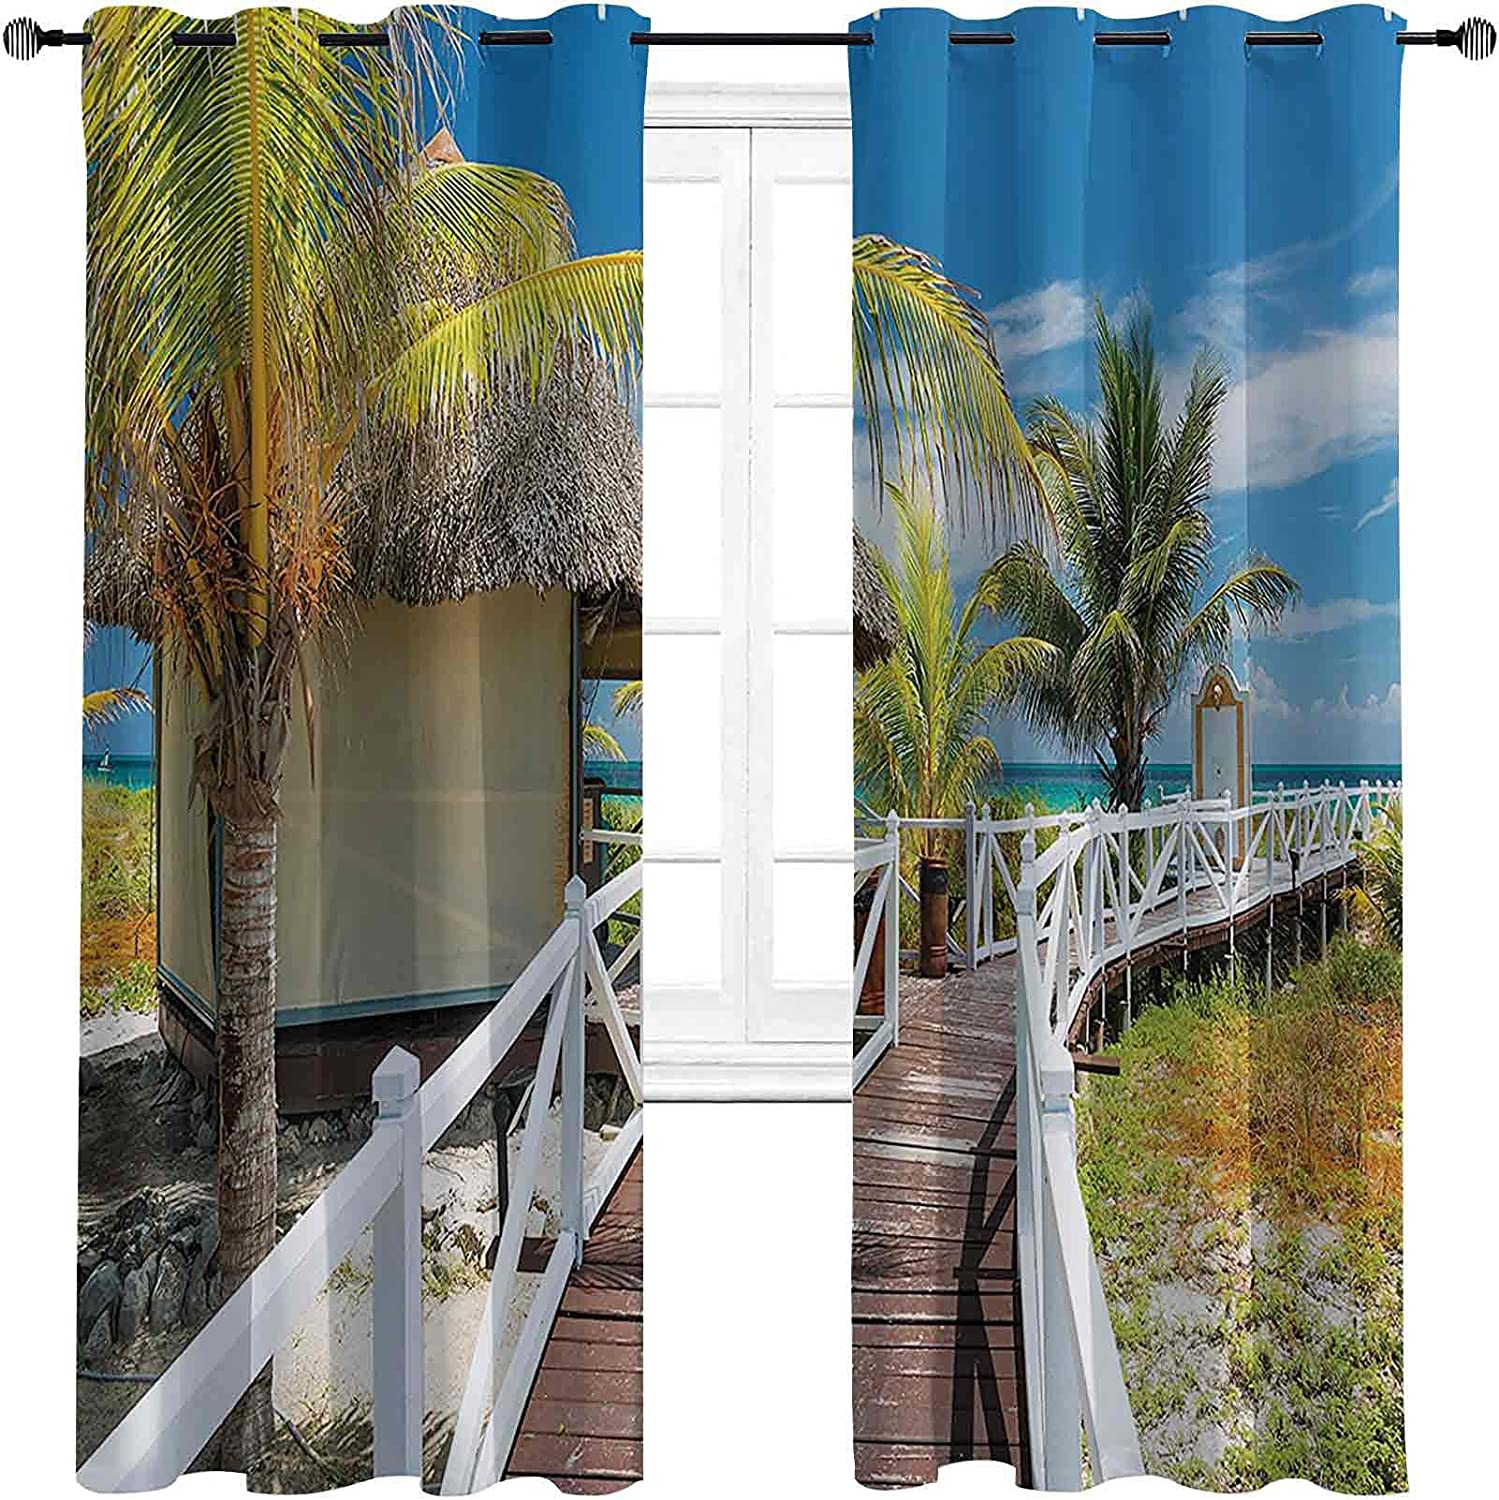 Seaside Decor Limited Special Price Collection Blackout Grommets darken Outlet SALE Curtains with